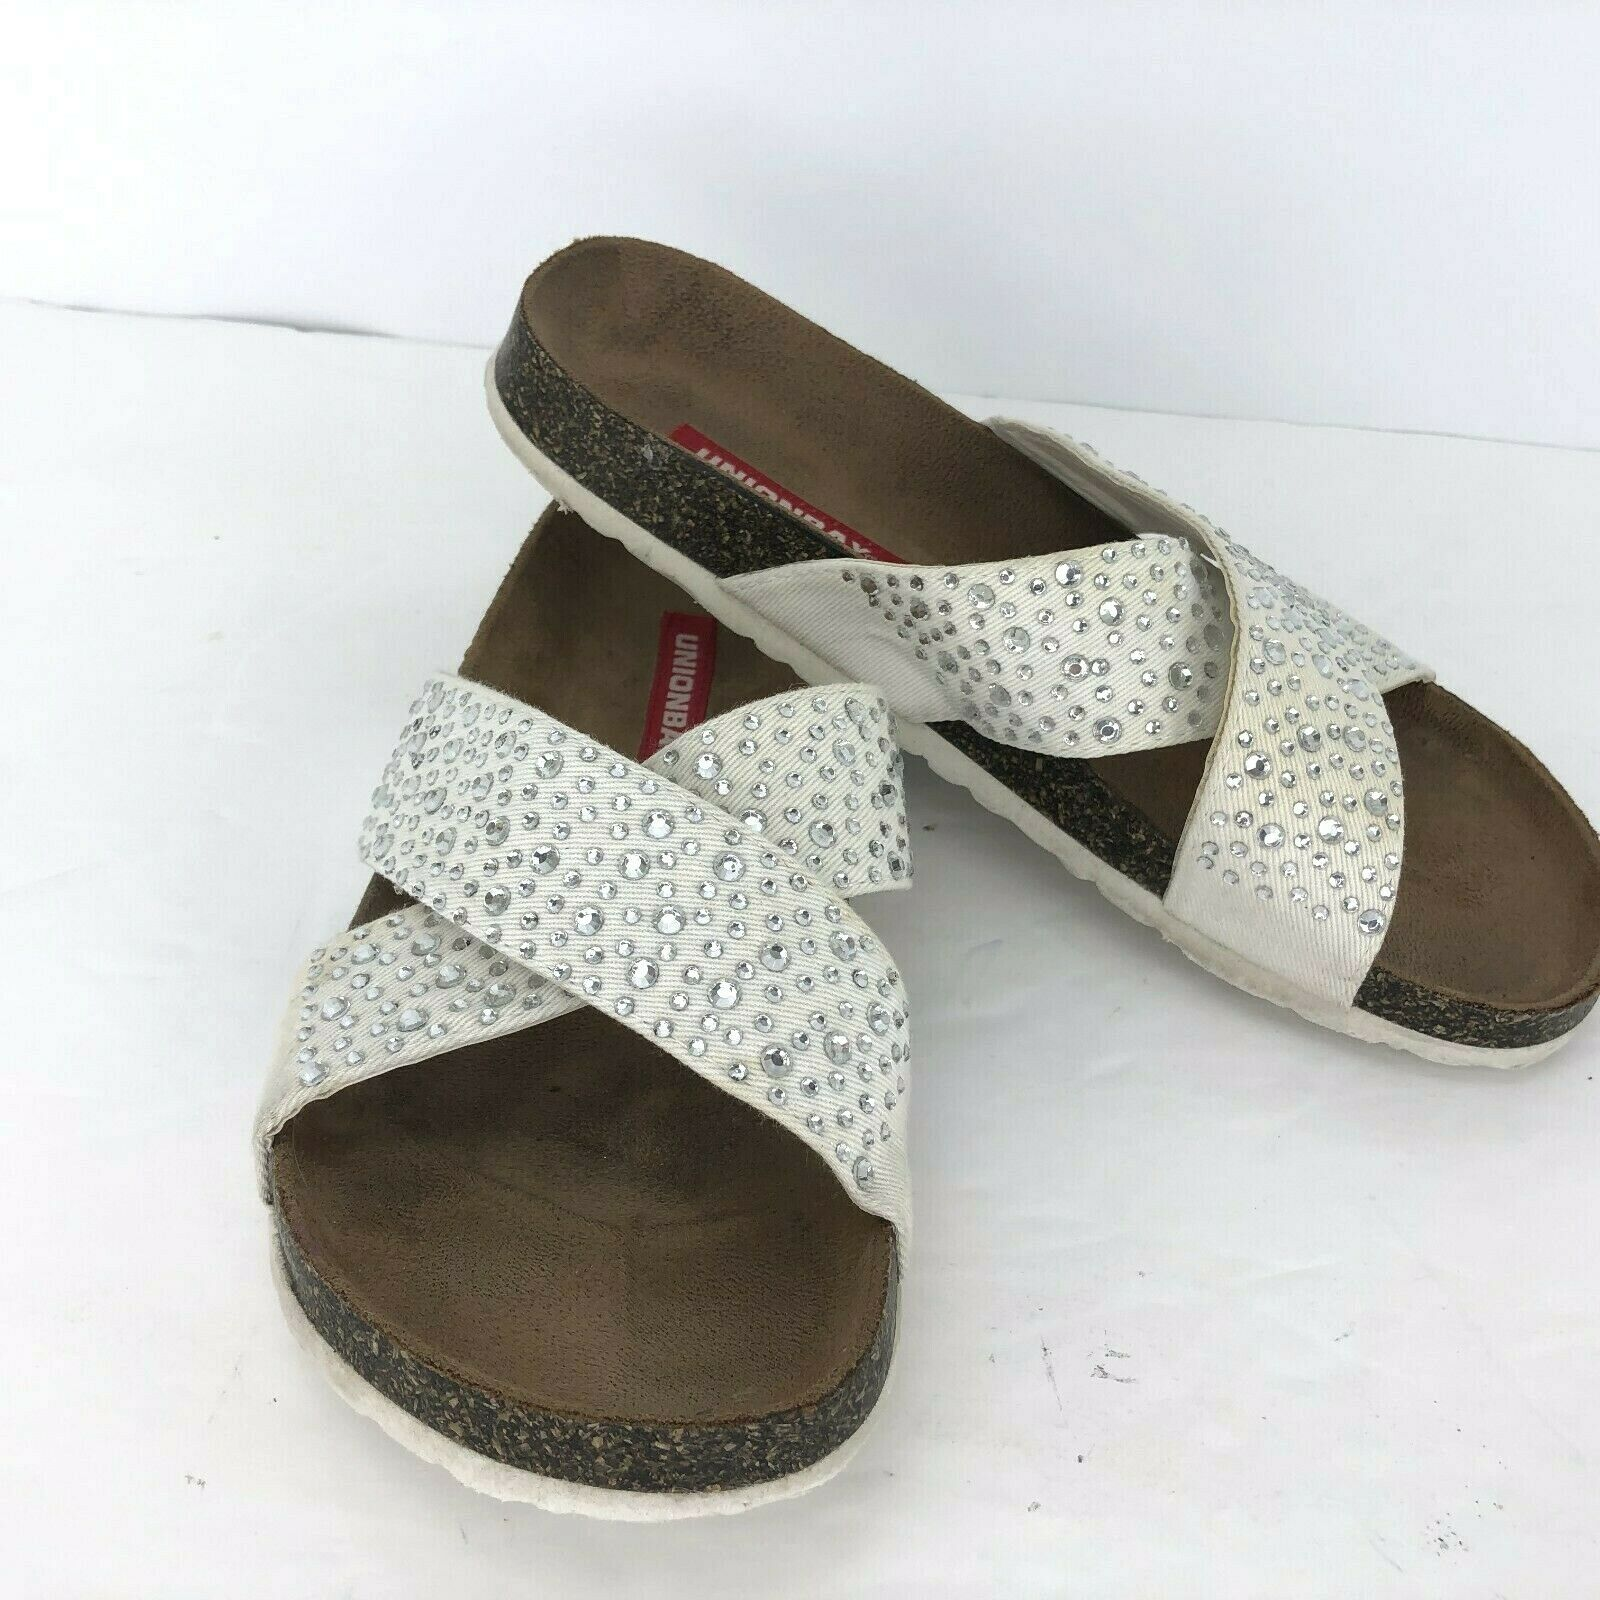 Primary image for Union Bay Twill 7.5 Kris Kross Slide Sandal 3108084 Off White Canvas Rhinestones